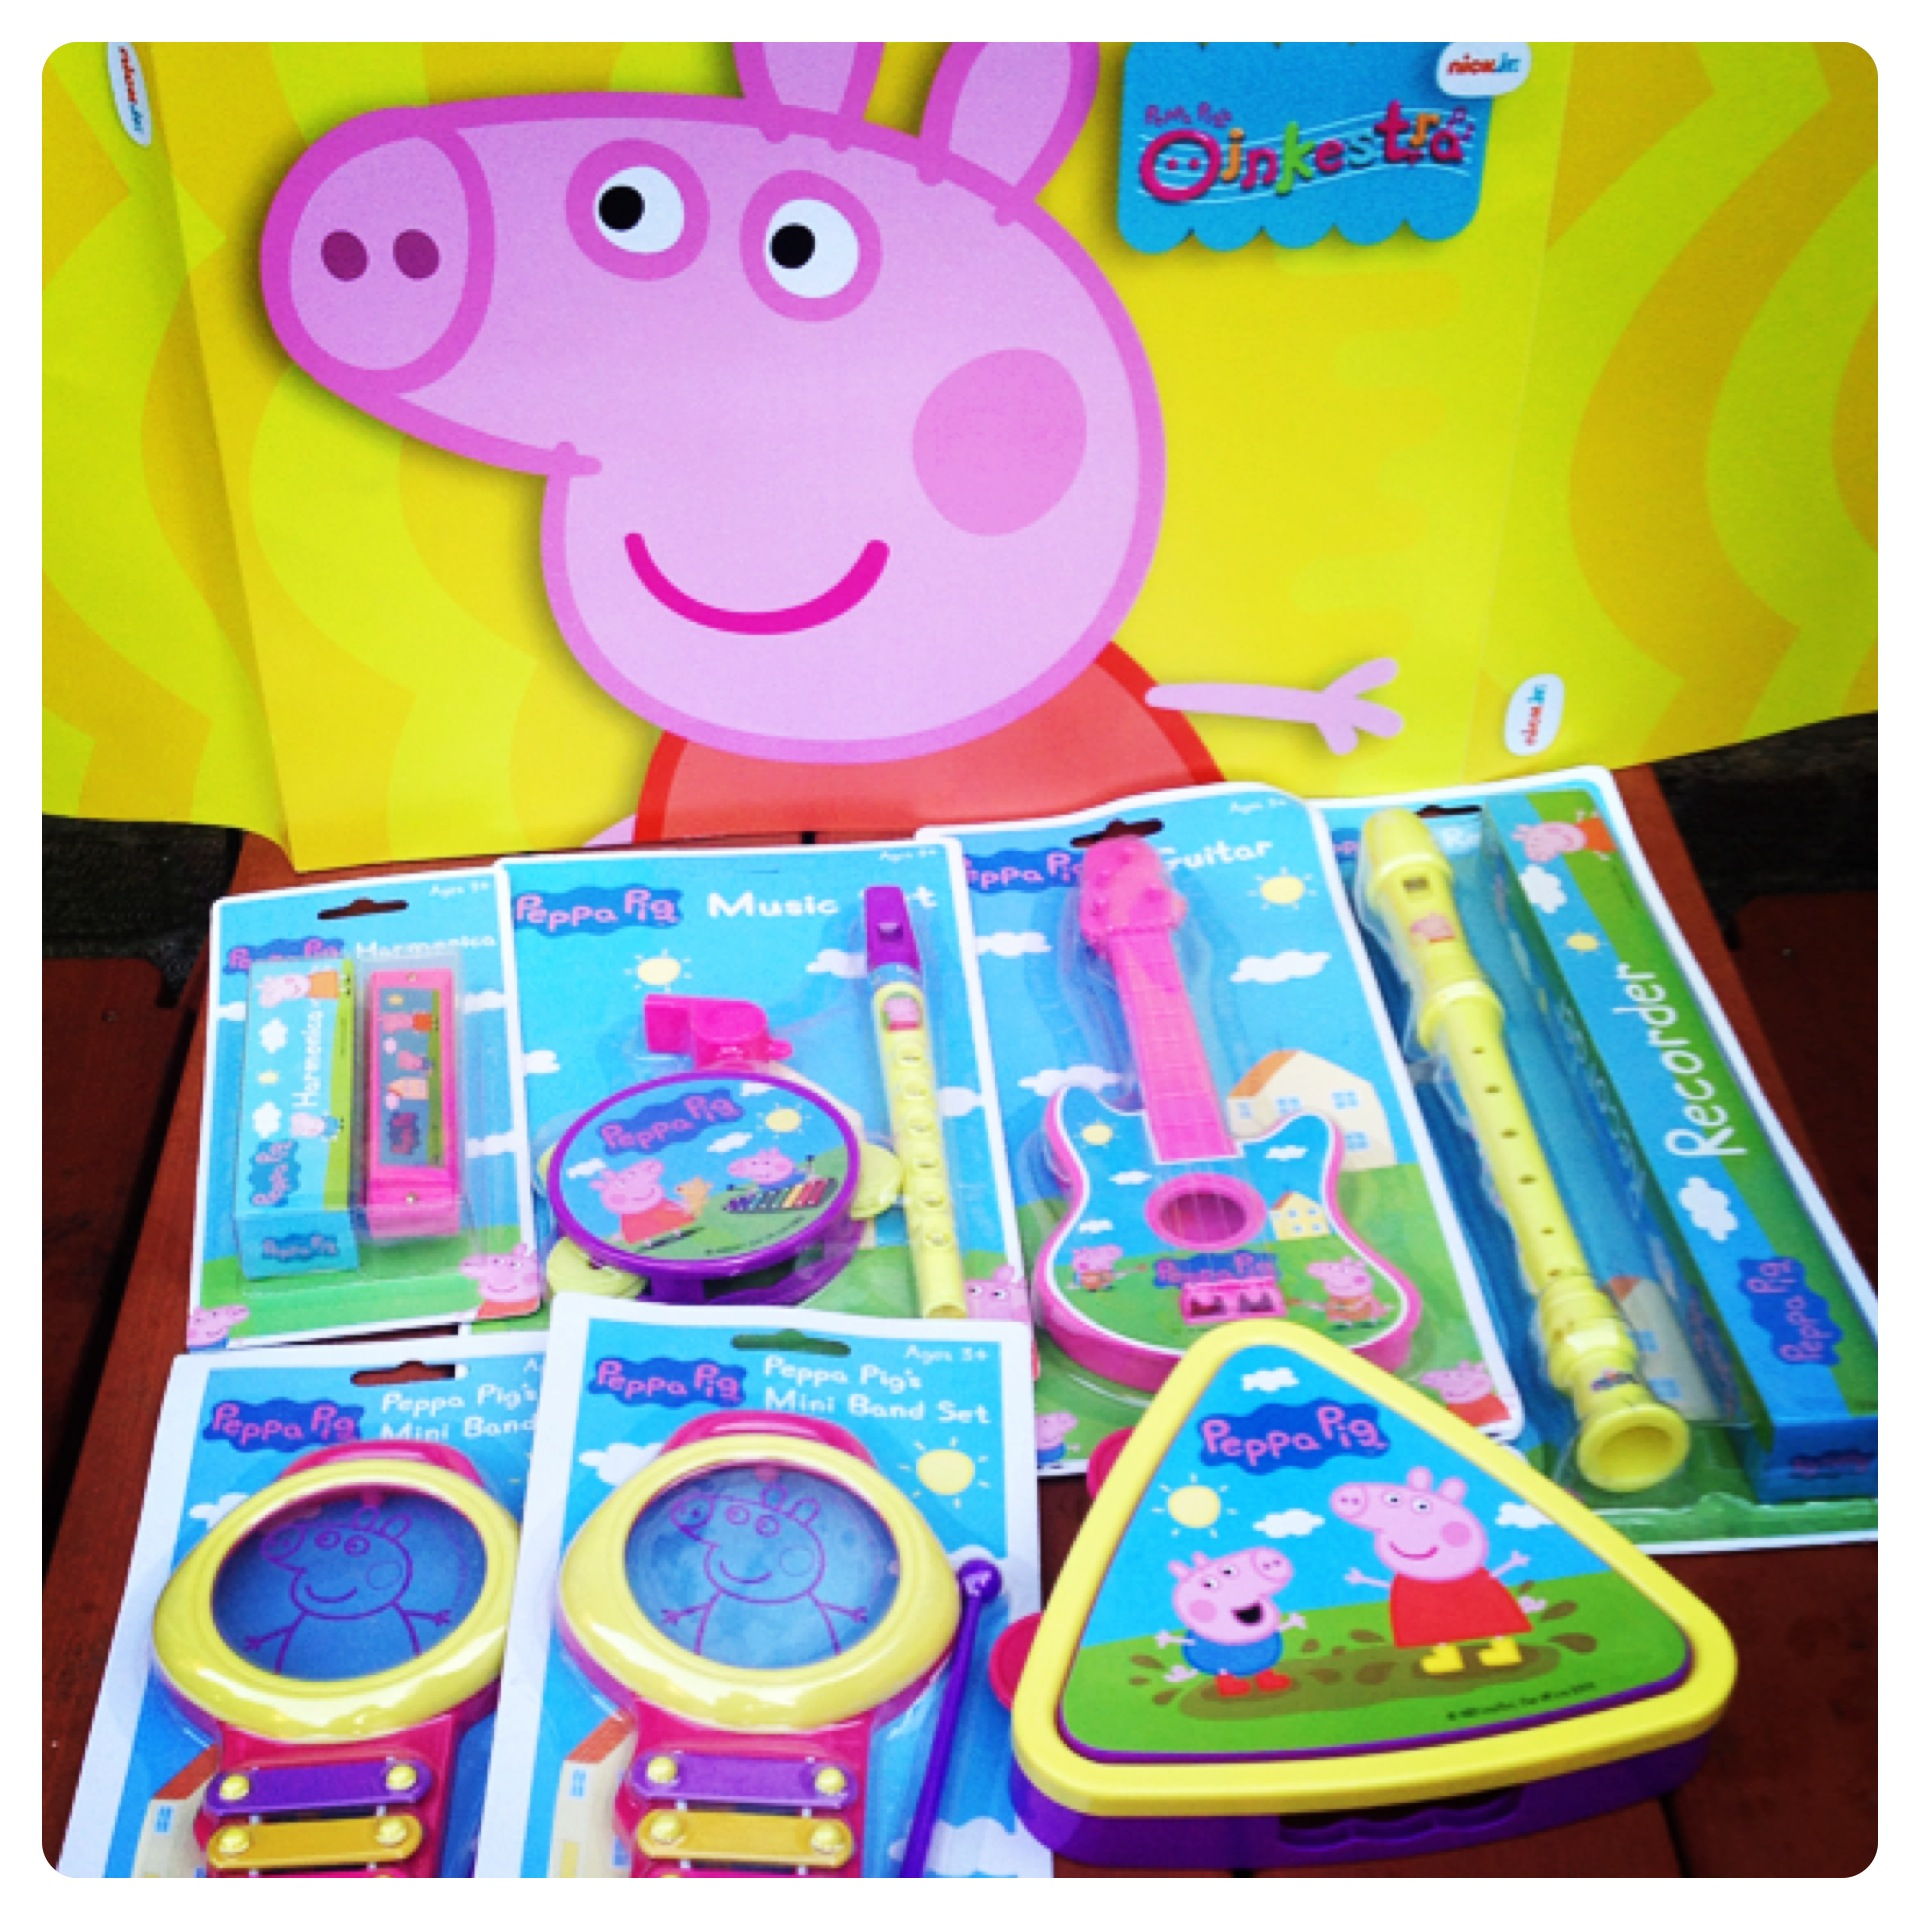 Join Peppa Pig Oink A Thon On 5th July Win 1 Of 3 Nick Jr Goodie Peppas First Sleepover Pigs Oinkestra Pack